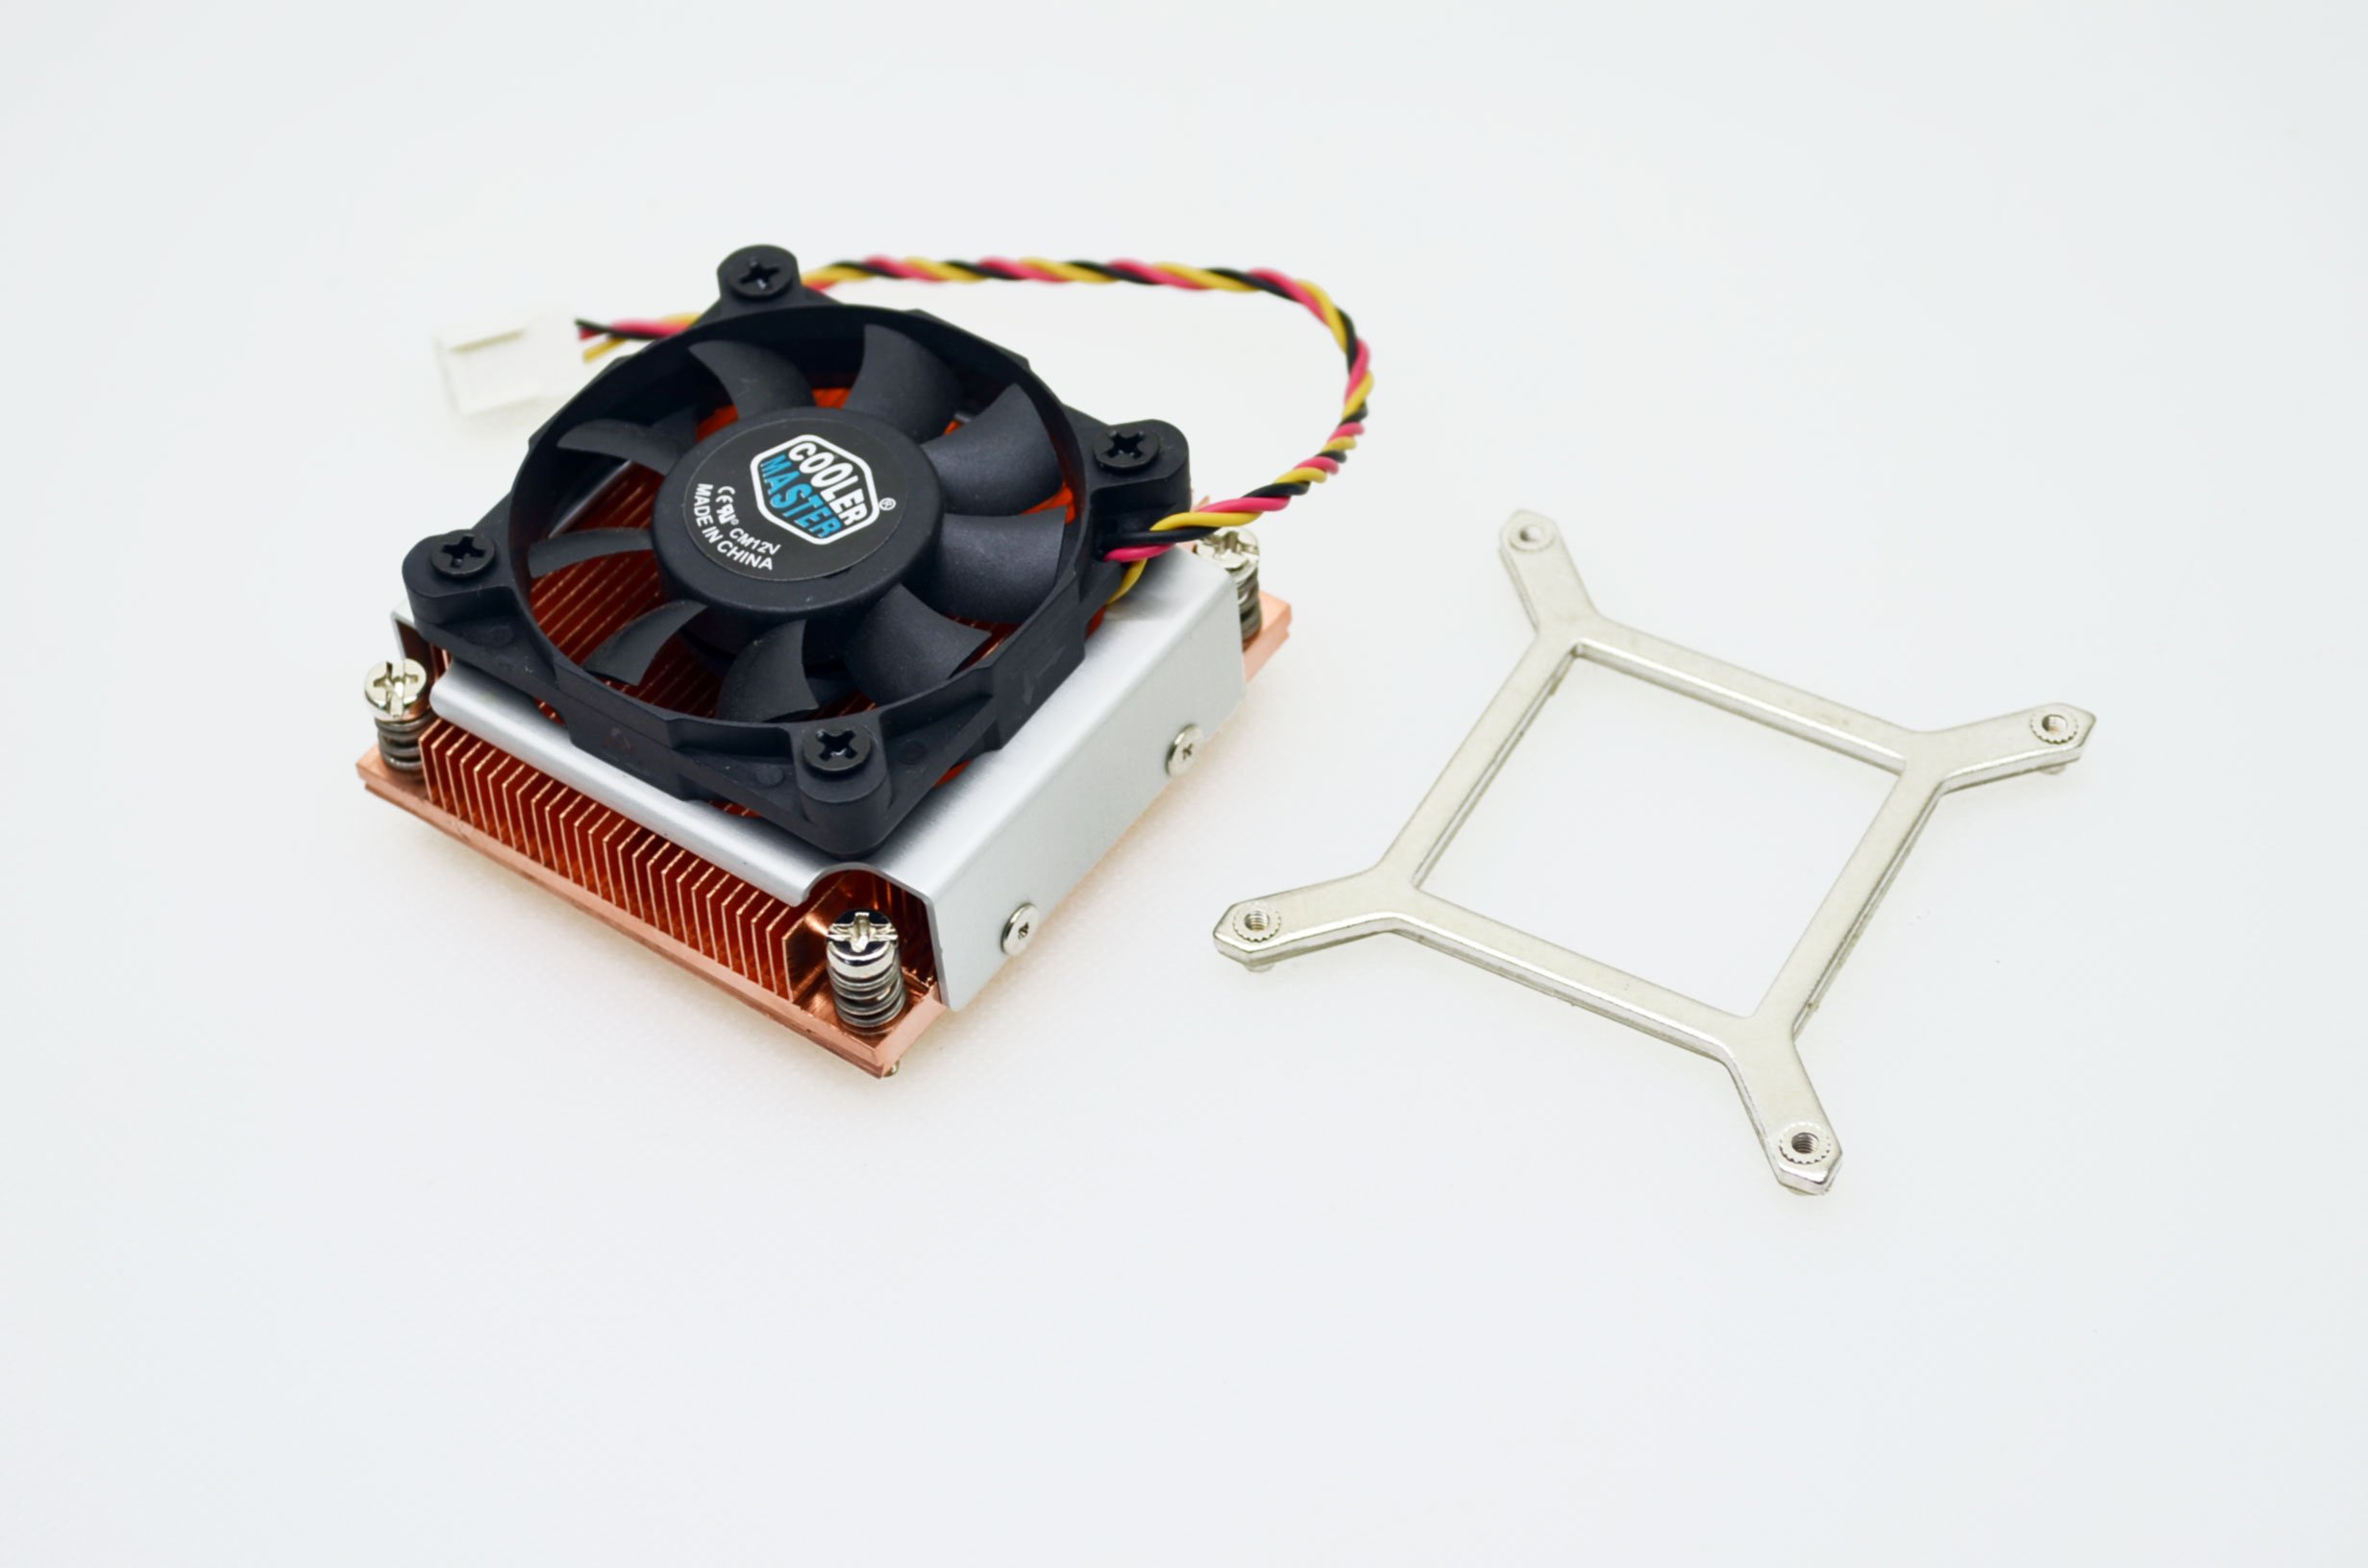 Cooler Master Socket G2 Copper Heat Sink Cooling Fan for Intel Core i7-3940XM SR0US Mobile Extreme Edition CPU FCPGA988 988-Pin